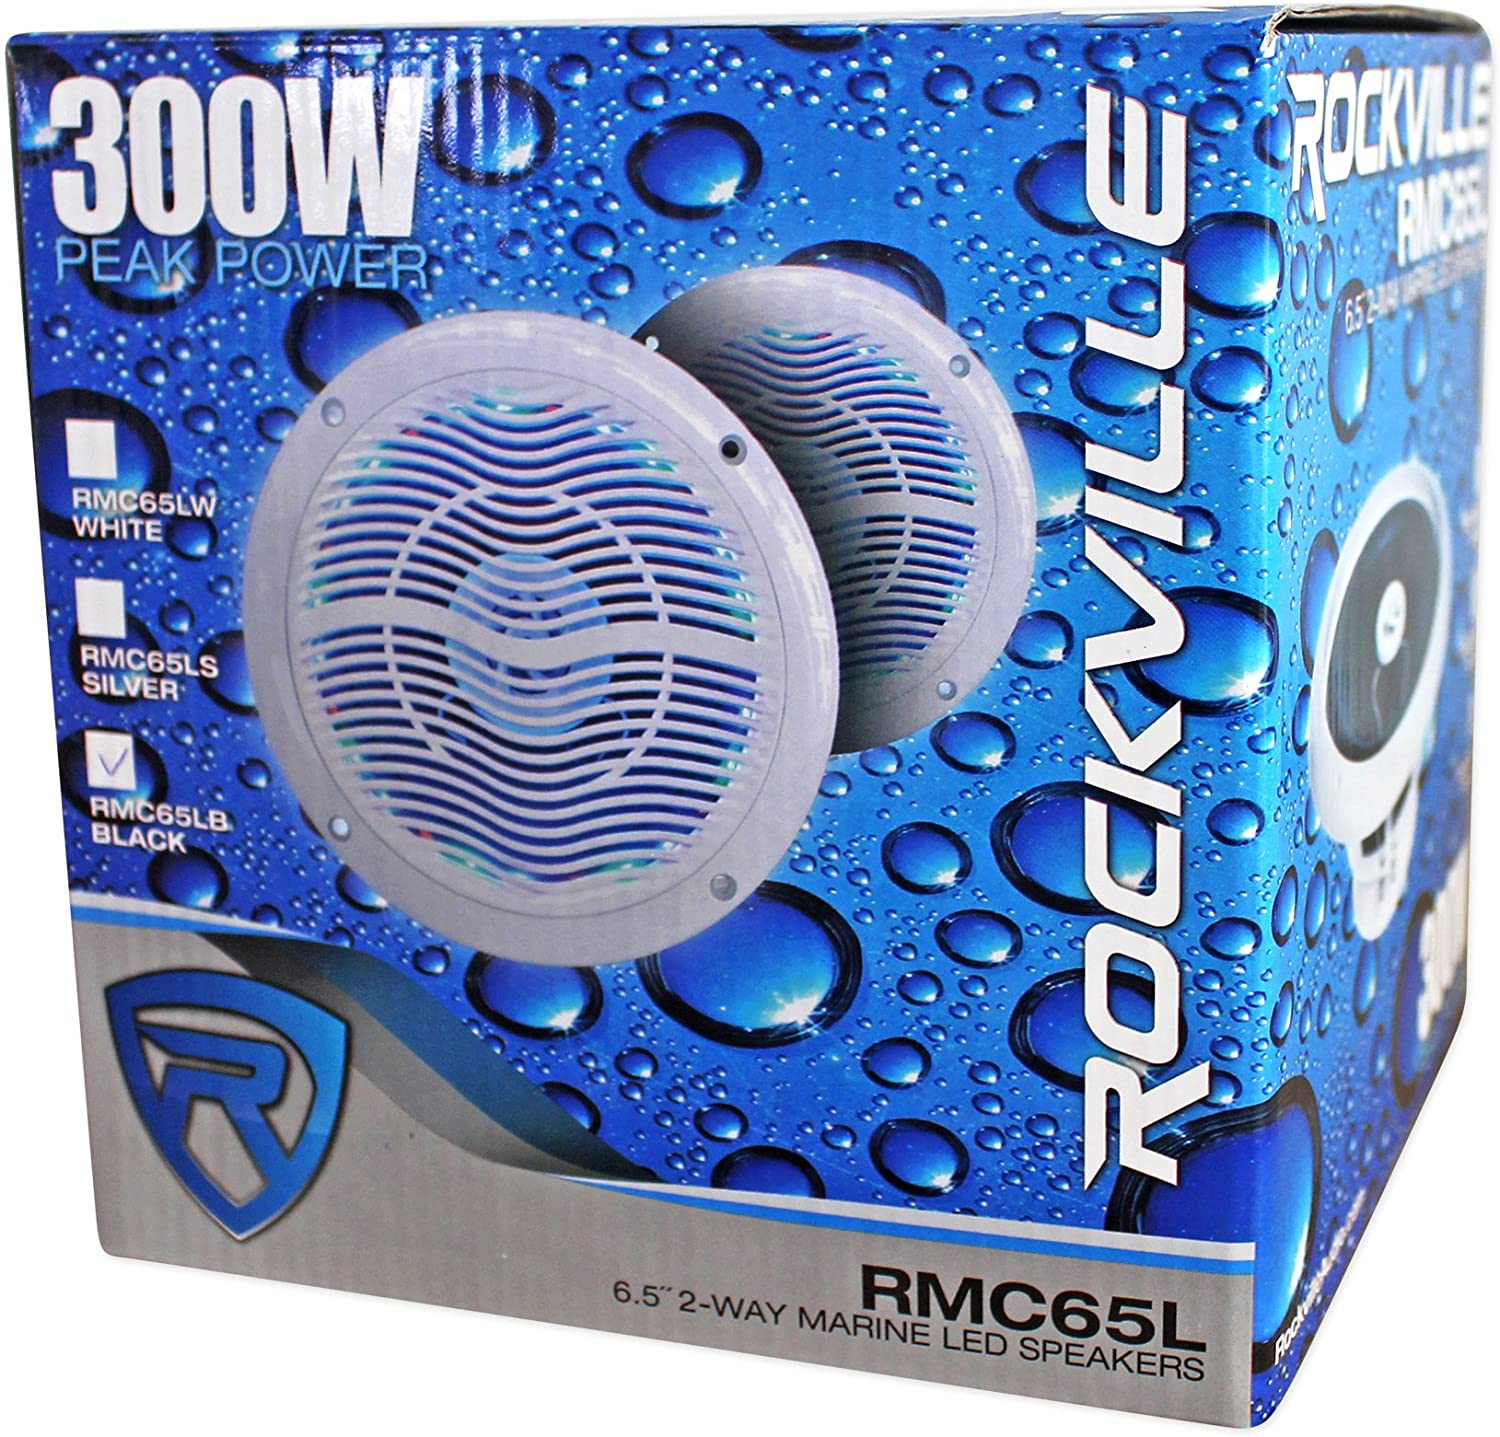 4 Rockville RMC65LB 6.5 600w Black Waterproof Hot Tub Speakers w//LEDs+Remote